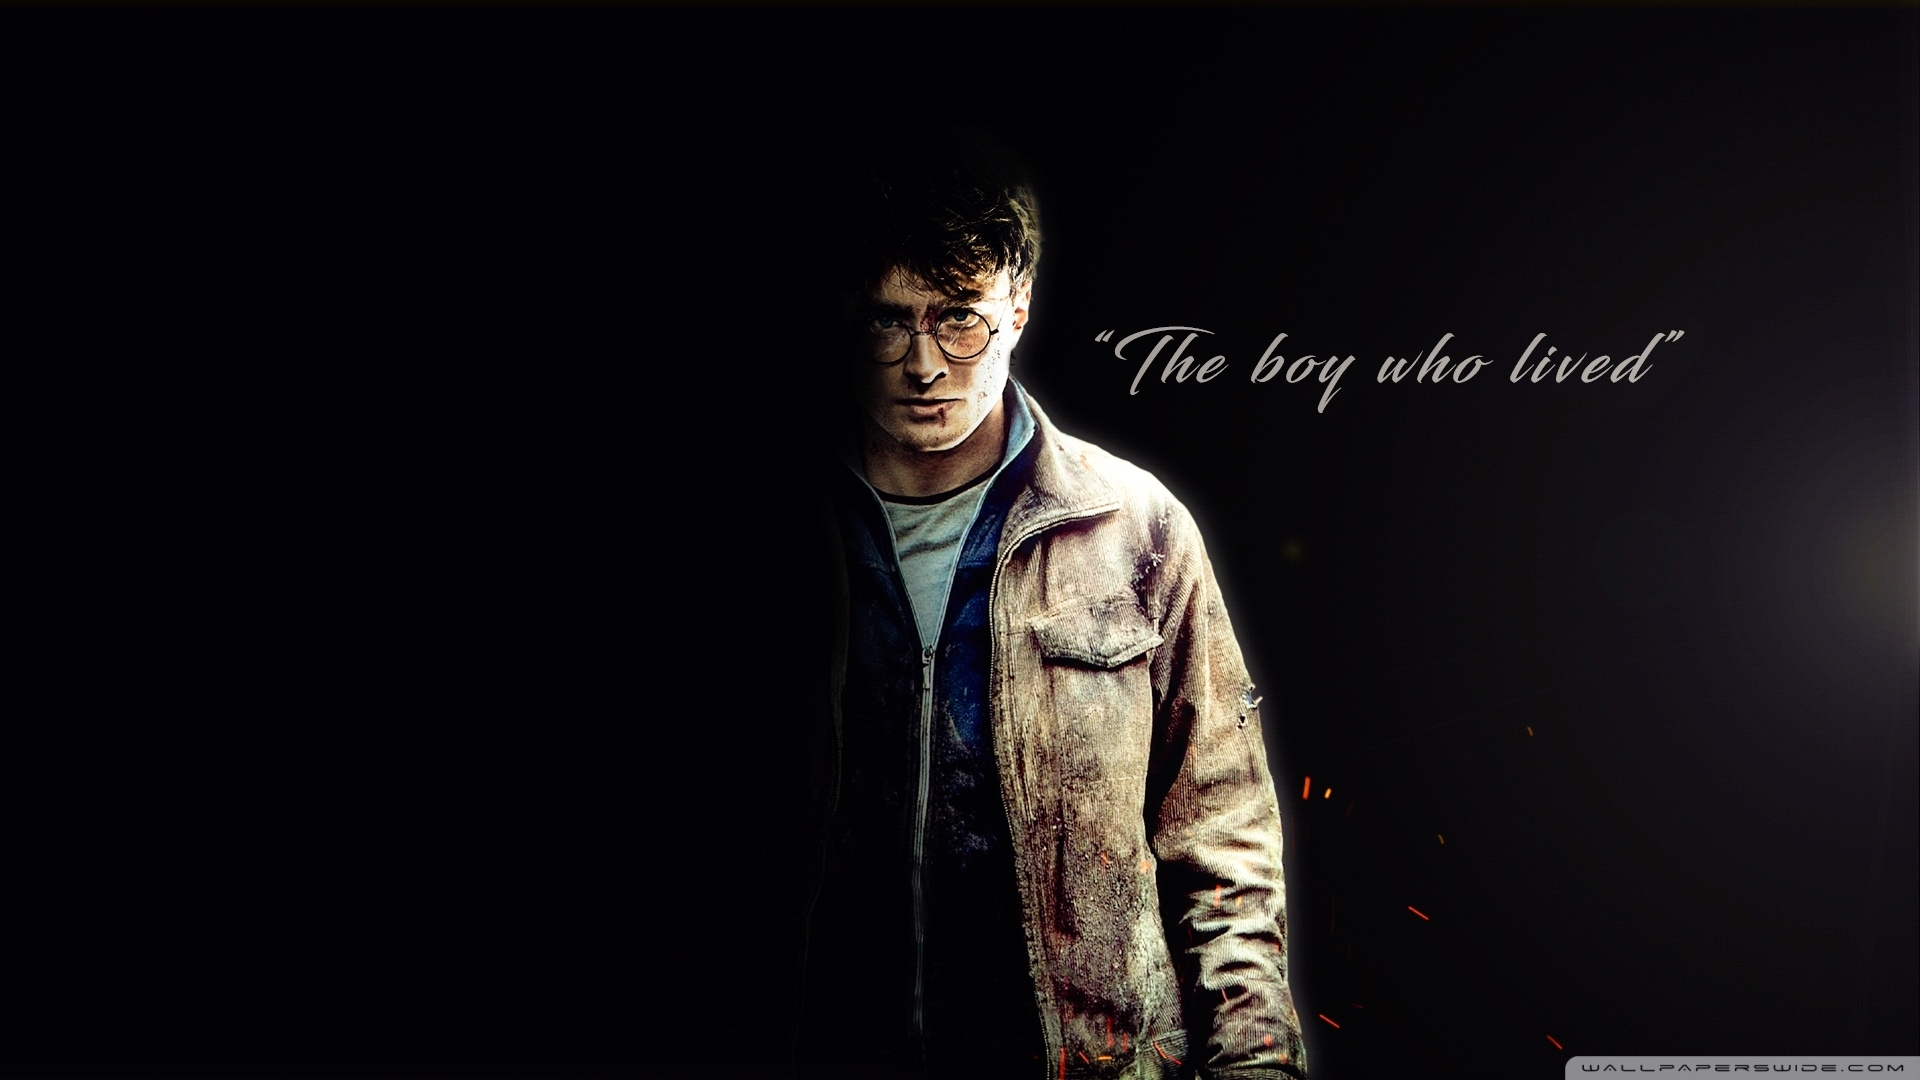 harry potter - the boy who lived ❤ 4k hd desktop wallpaper for 4k